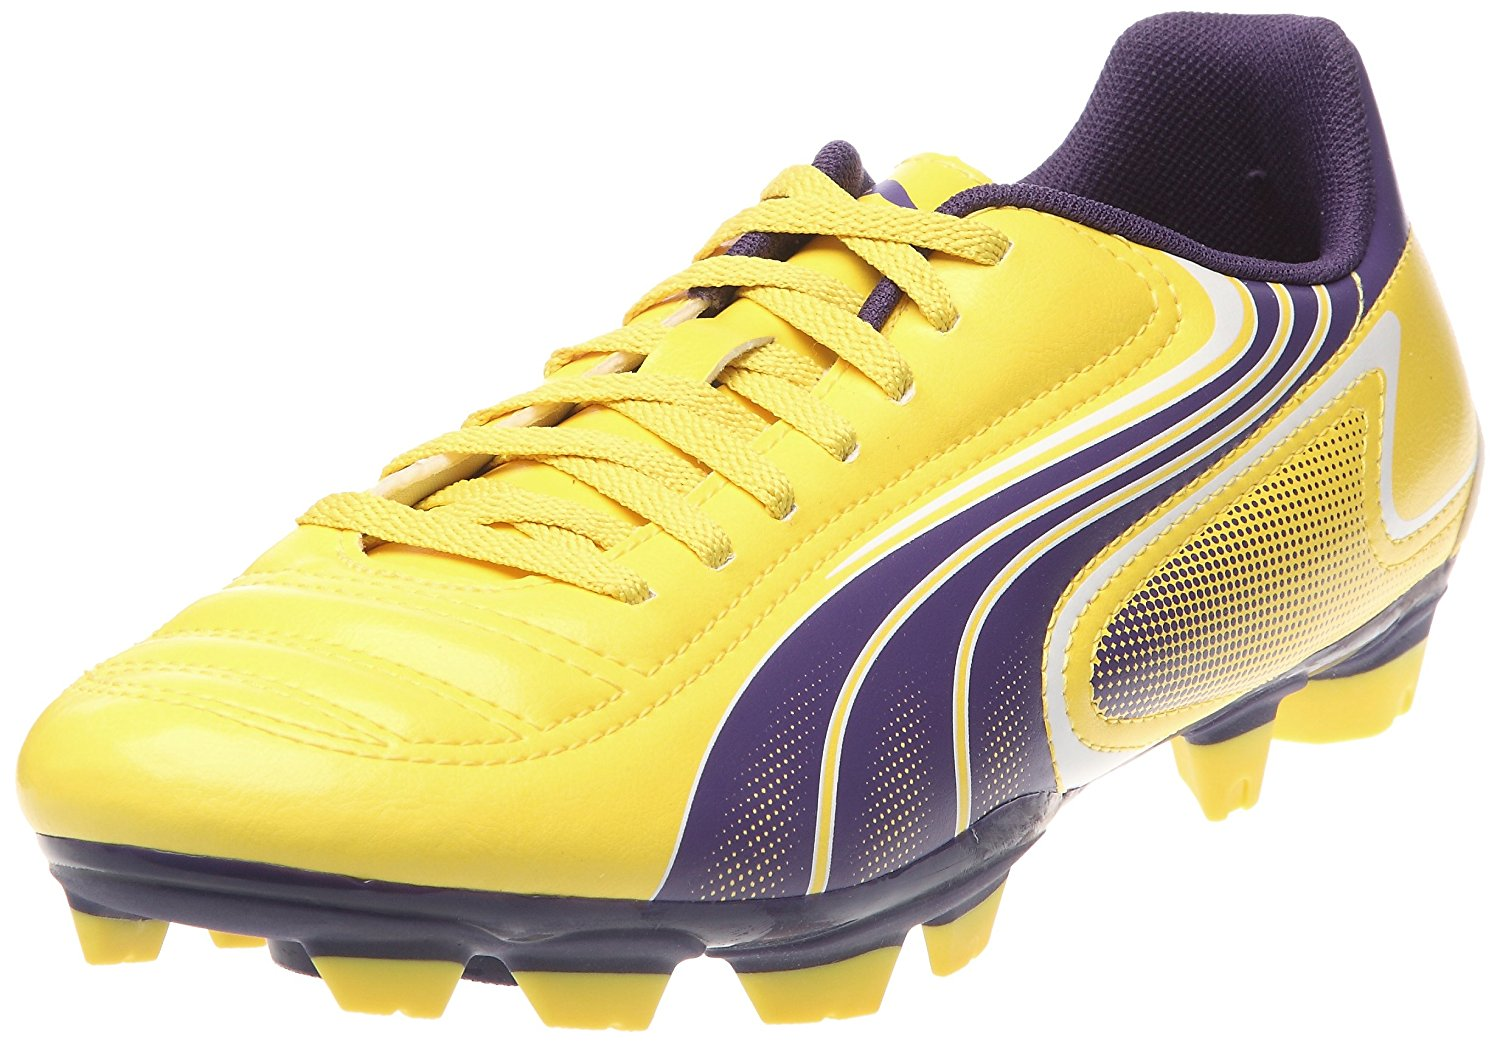 97bef0fb7 Cheap Puma Football Boots, find Puma Football Boots deals on line at ...